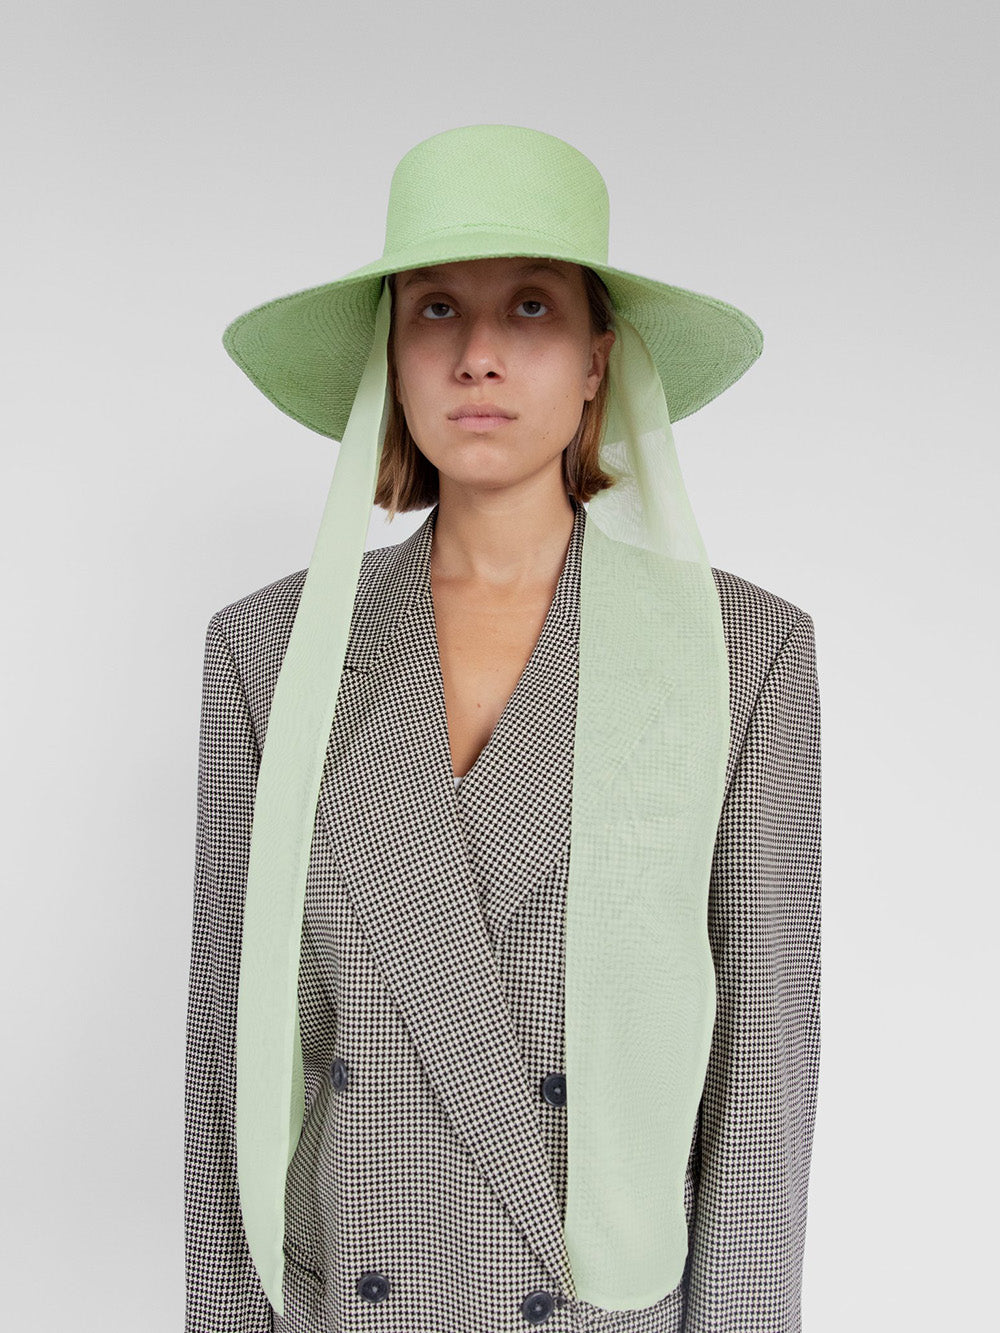 clyde pearl hat with neck scarf in khaki